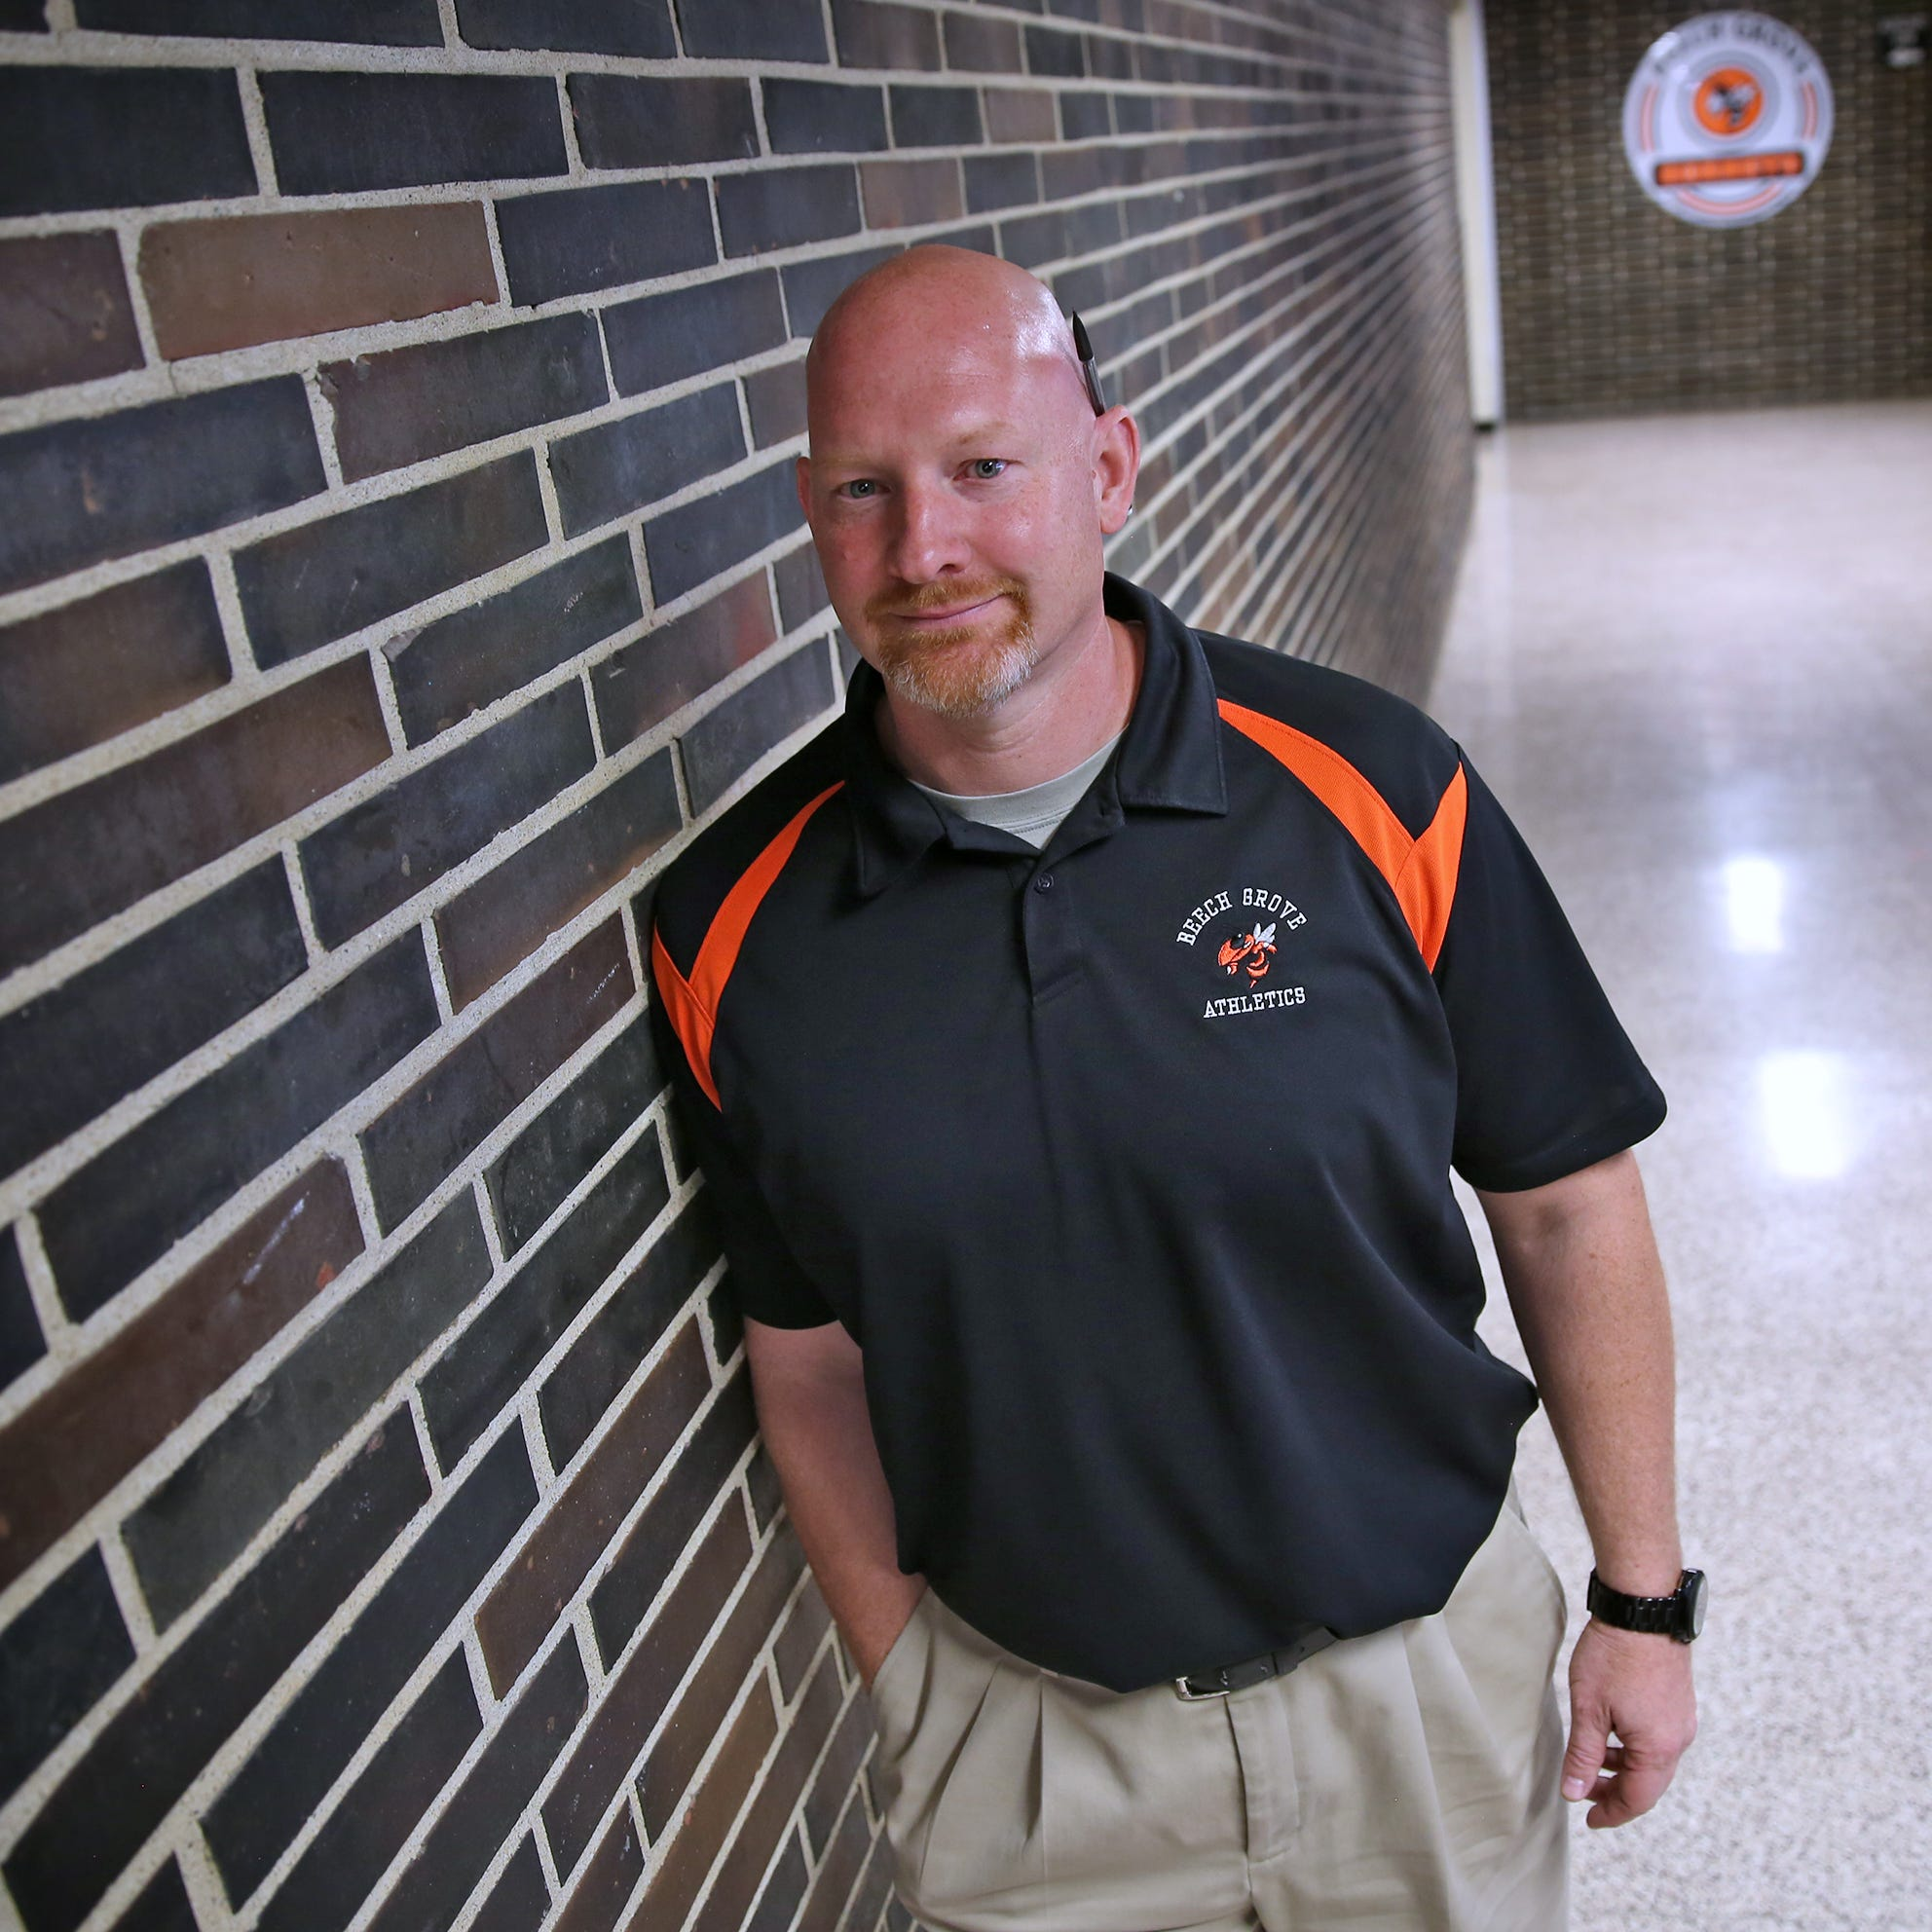 Beloved Beech Grove basketball coach Matt English was selfless to the end